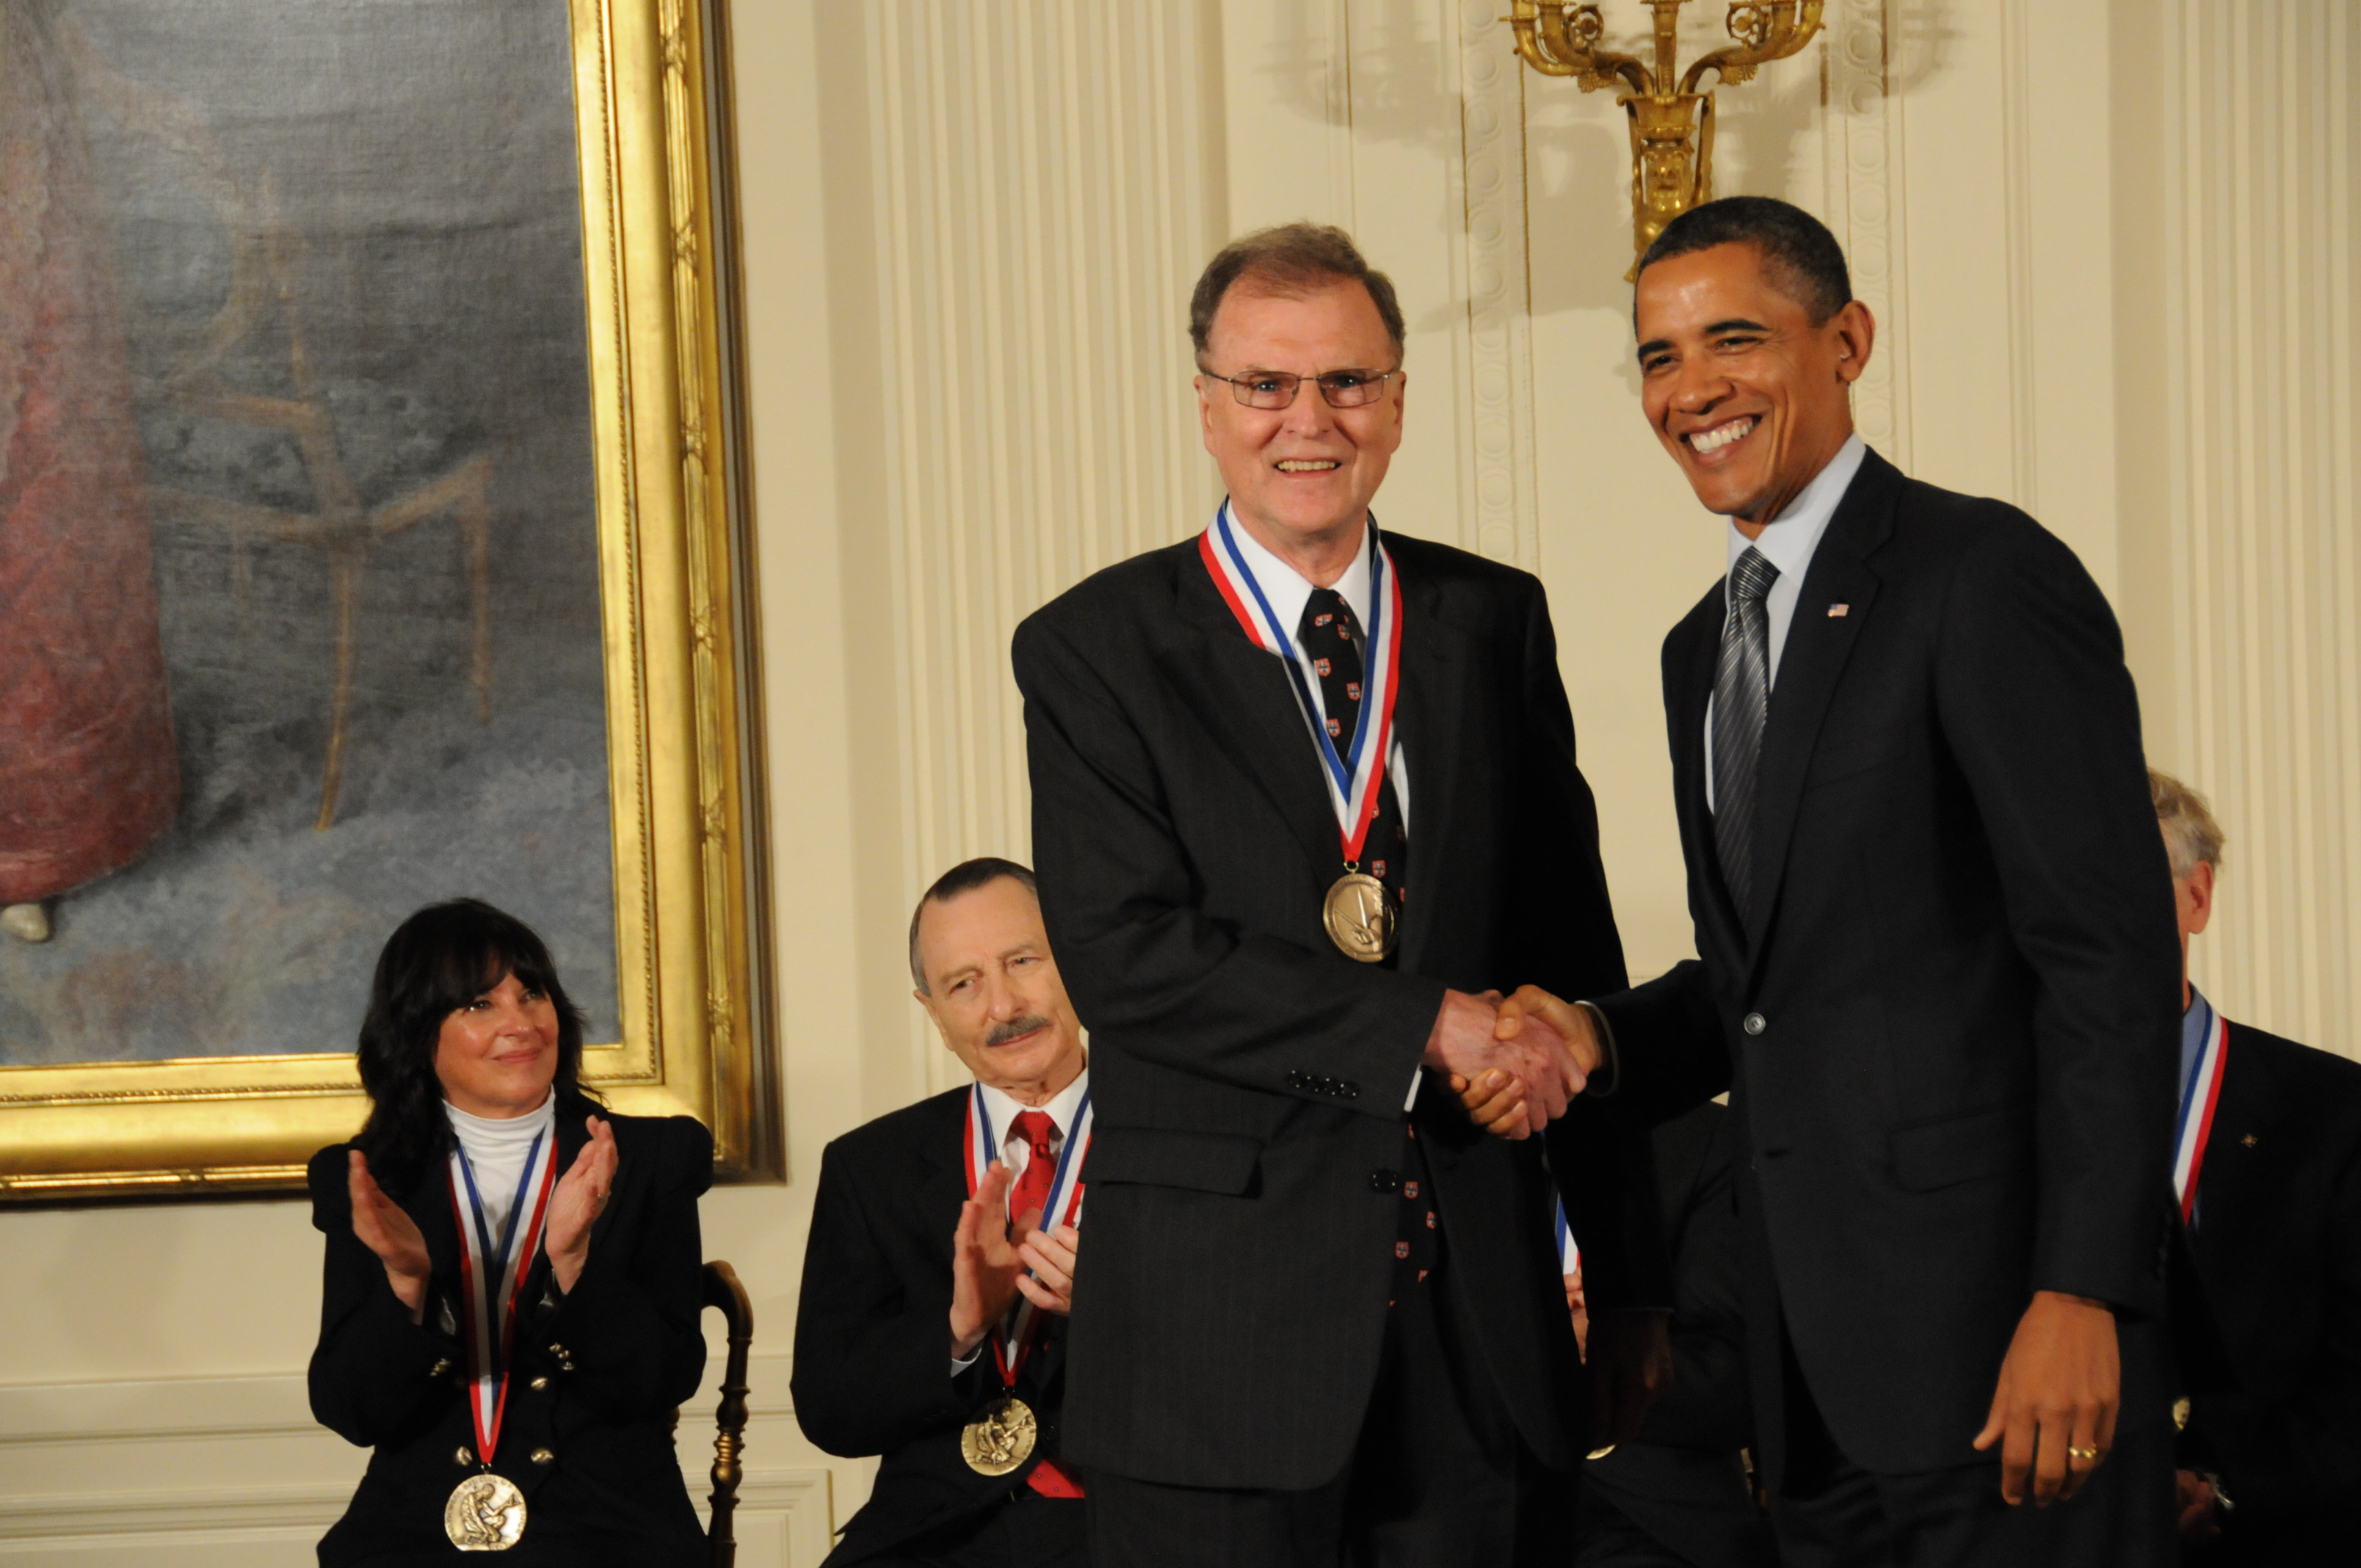 Michael Tompsett receives medal from President Obama